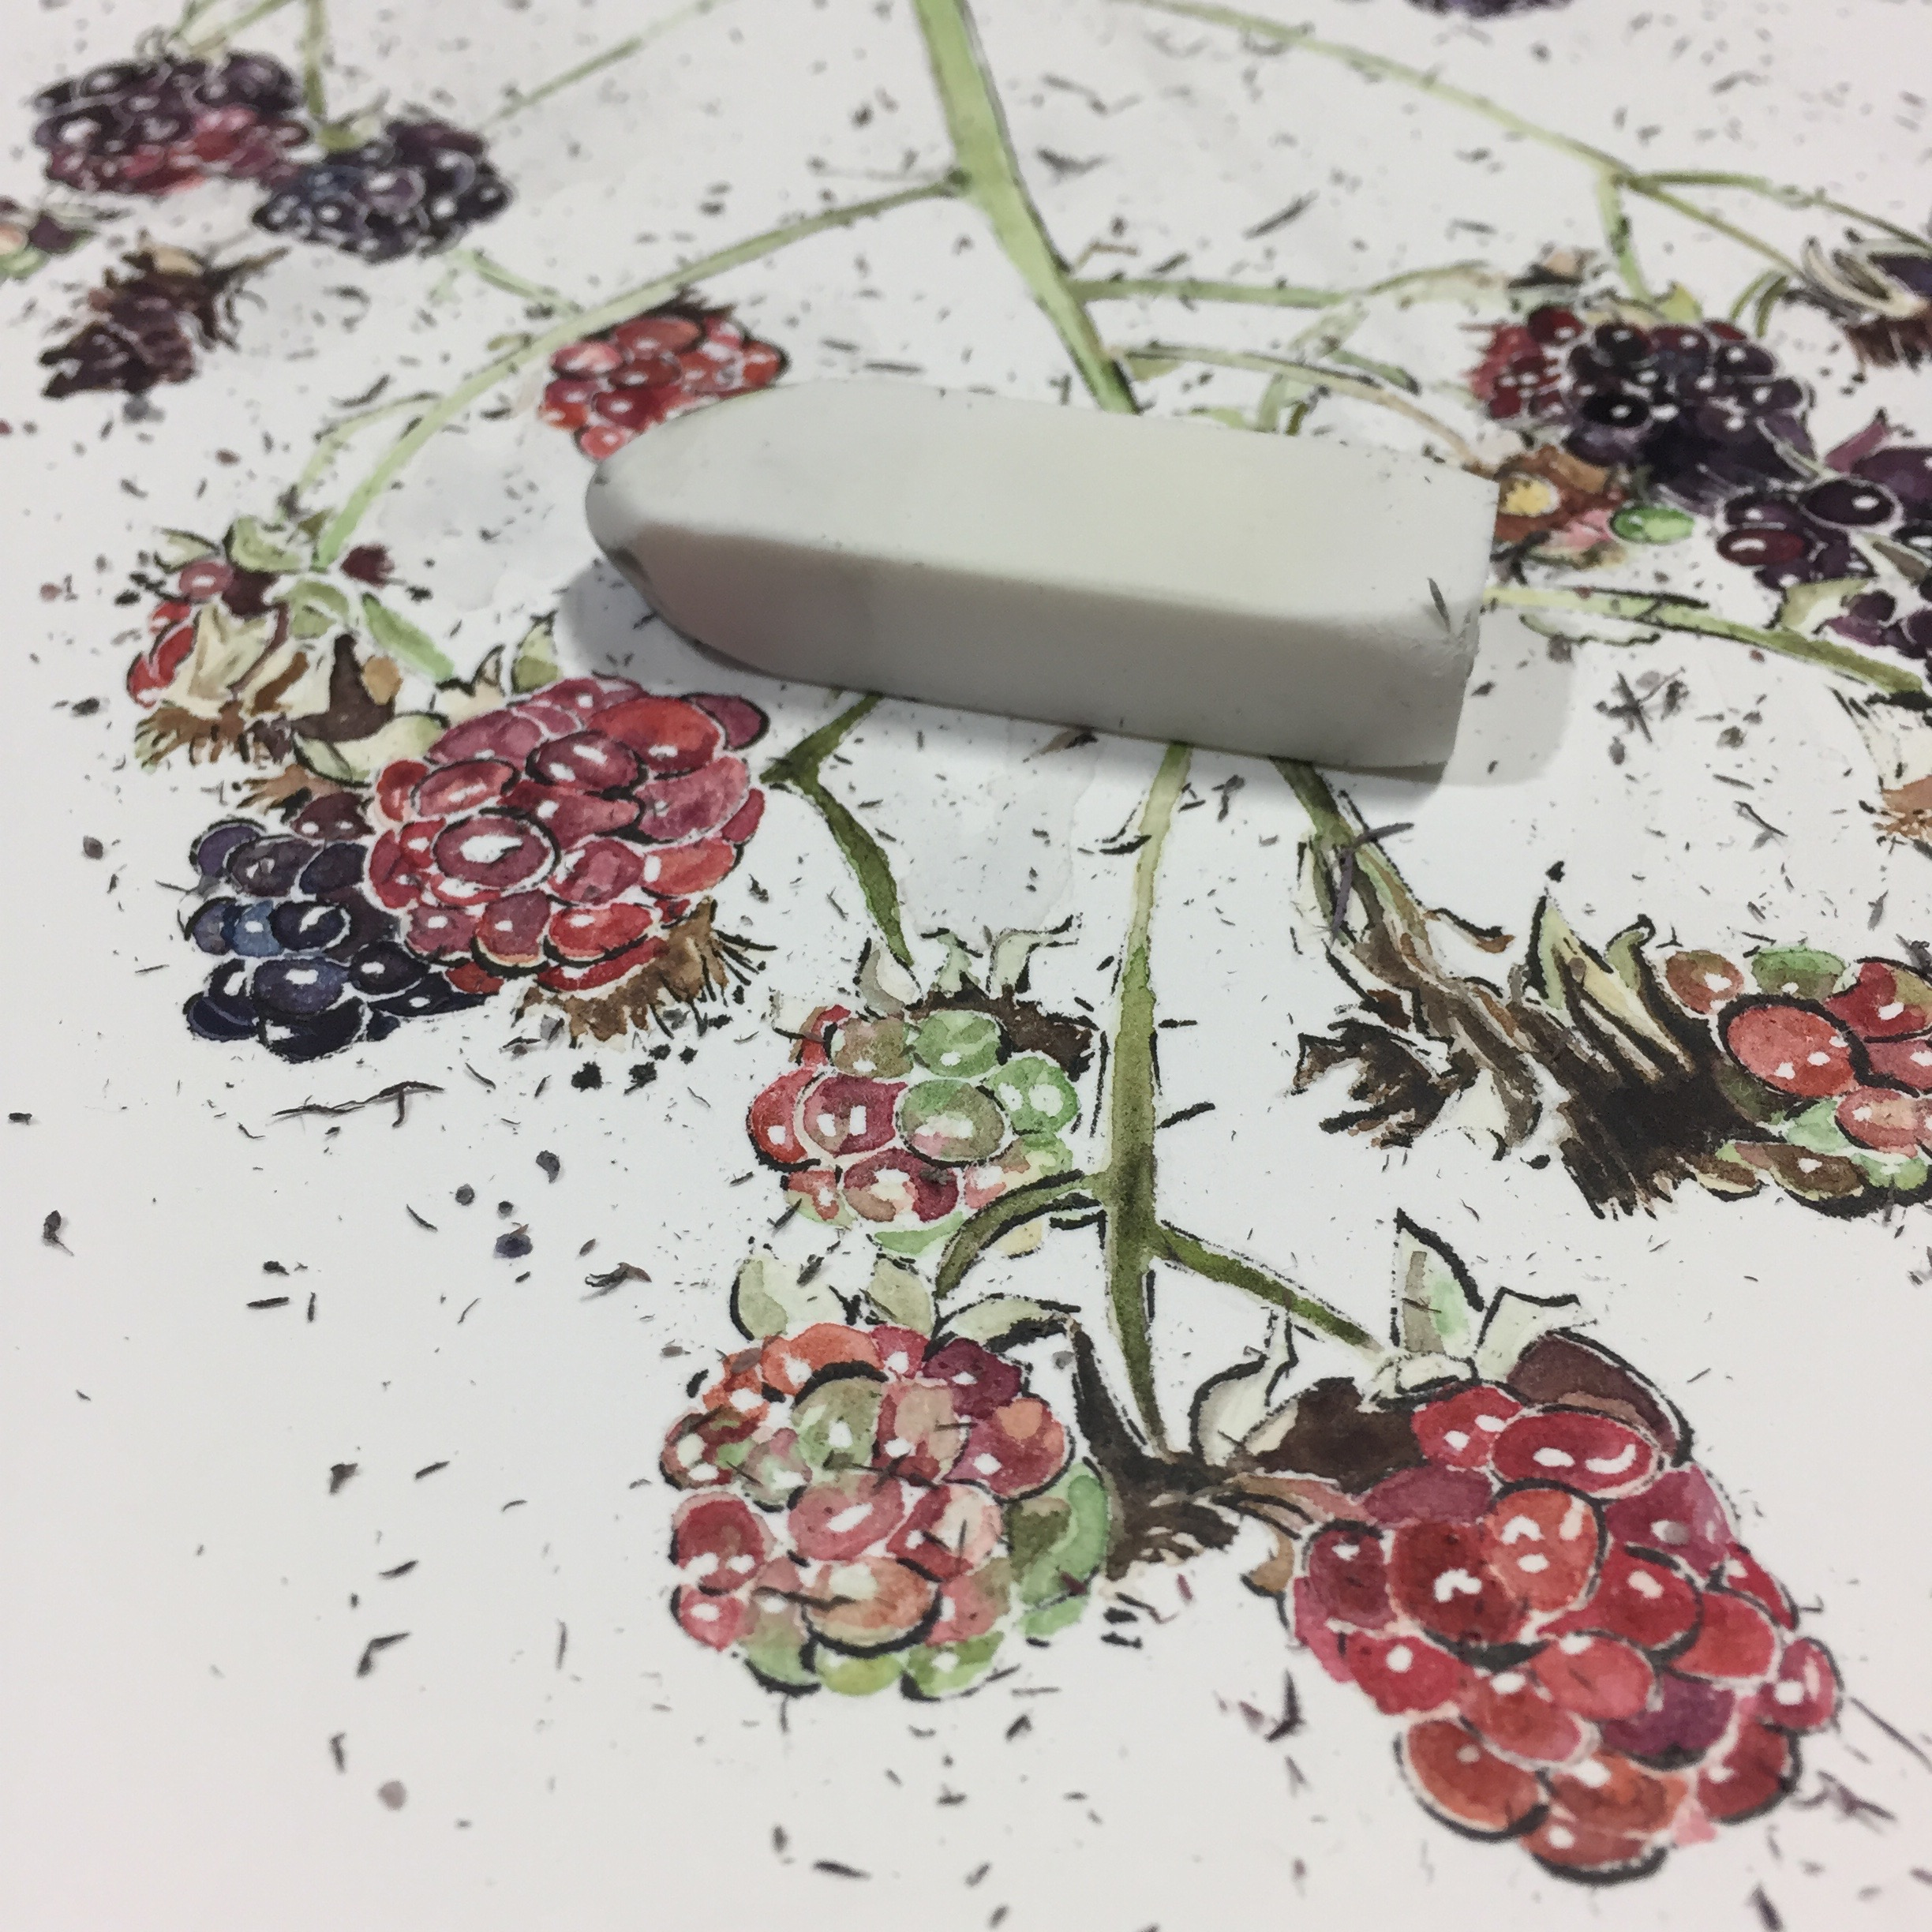 Removing masking fluid on Blackberries - work in progress by Lucy Clayton